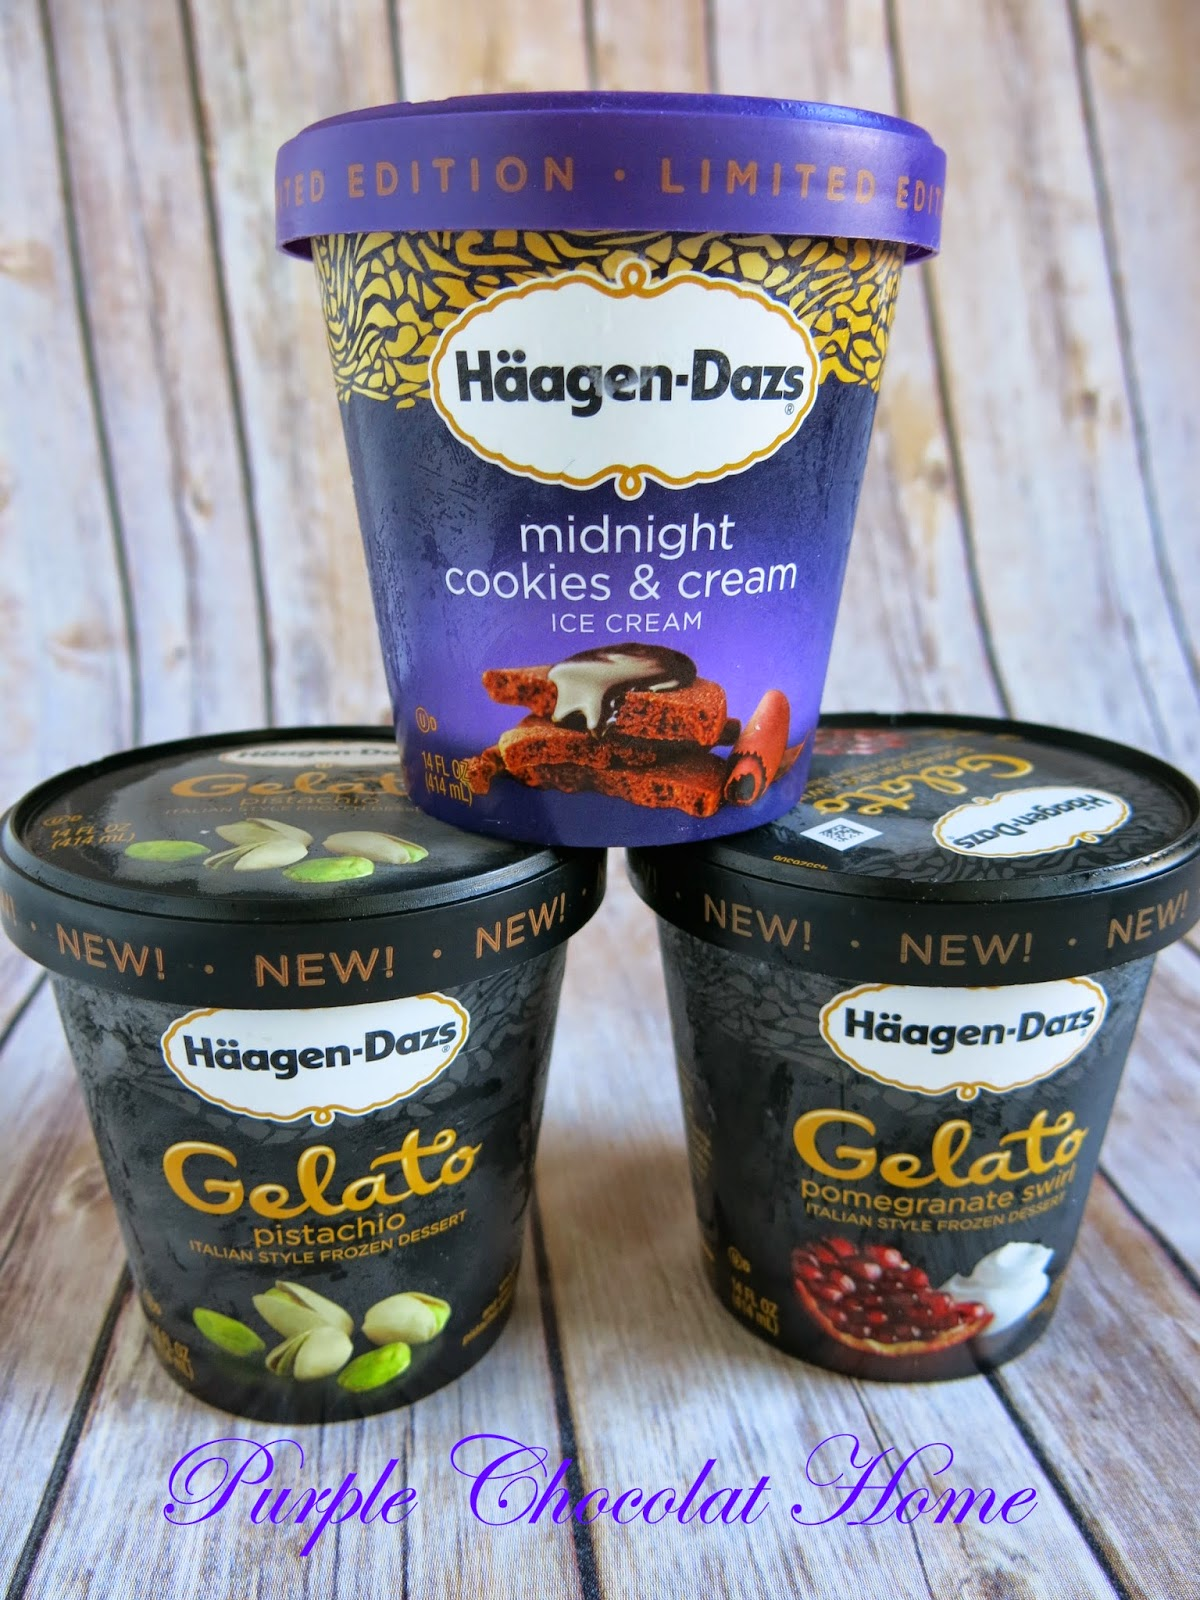 haagen-dazs has new flavors and i get to try them!  pistachio gelato cookie cups with pistachio brittle